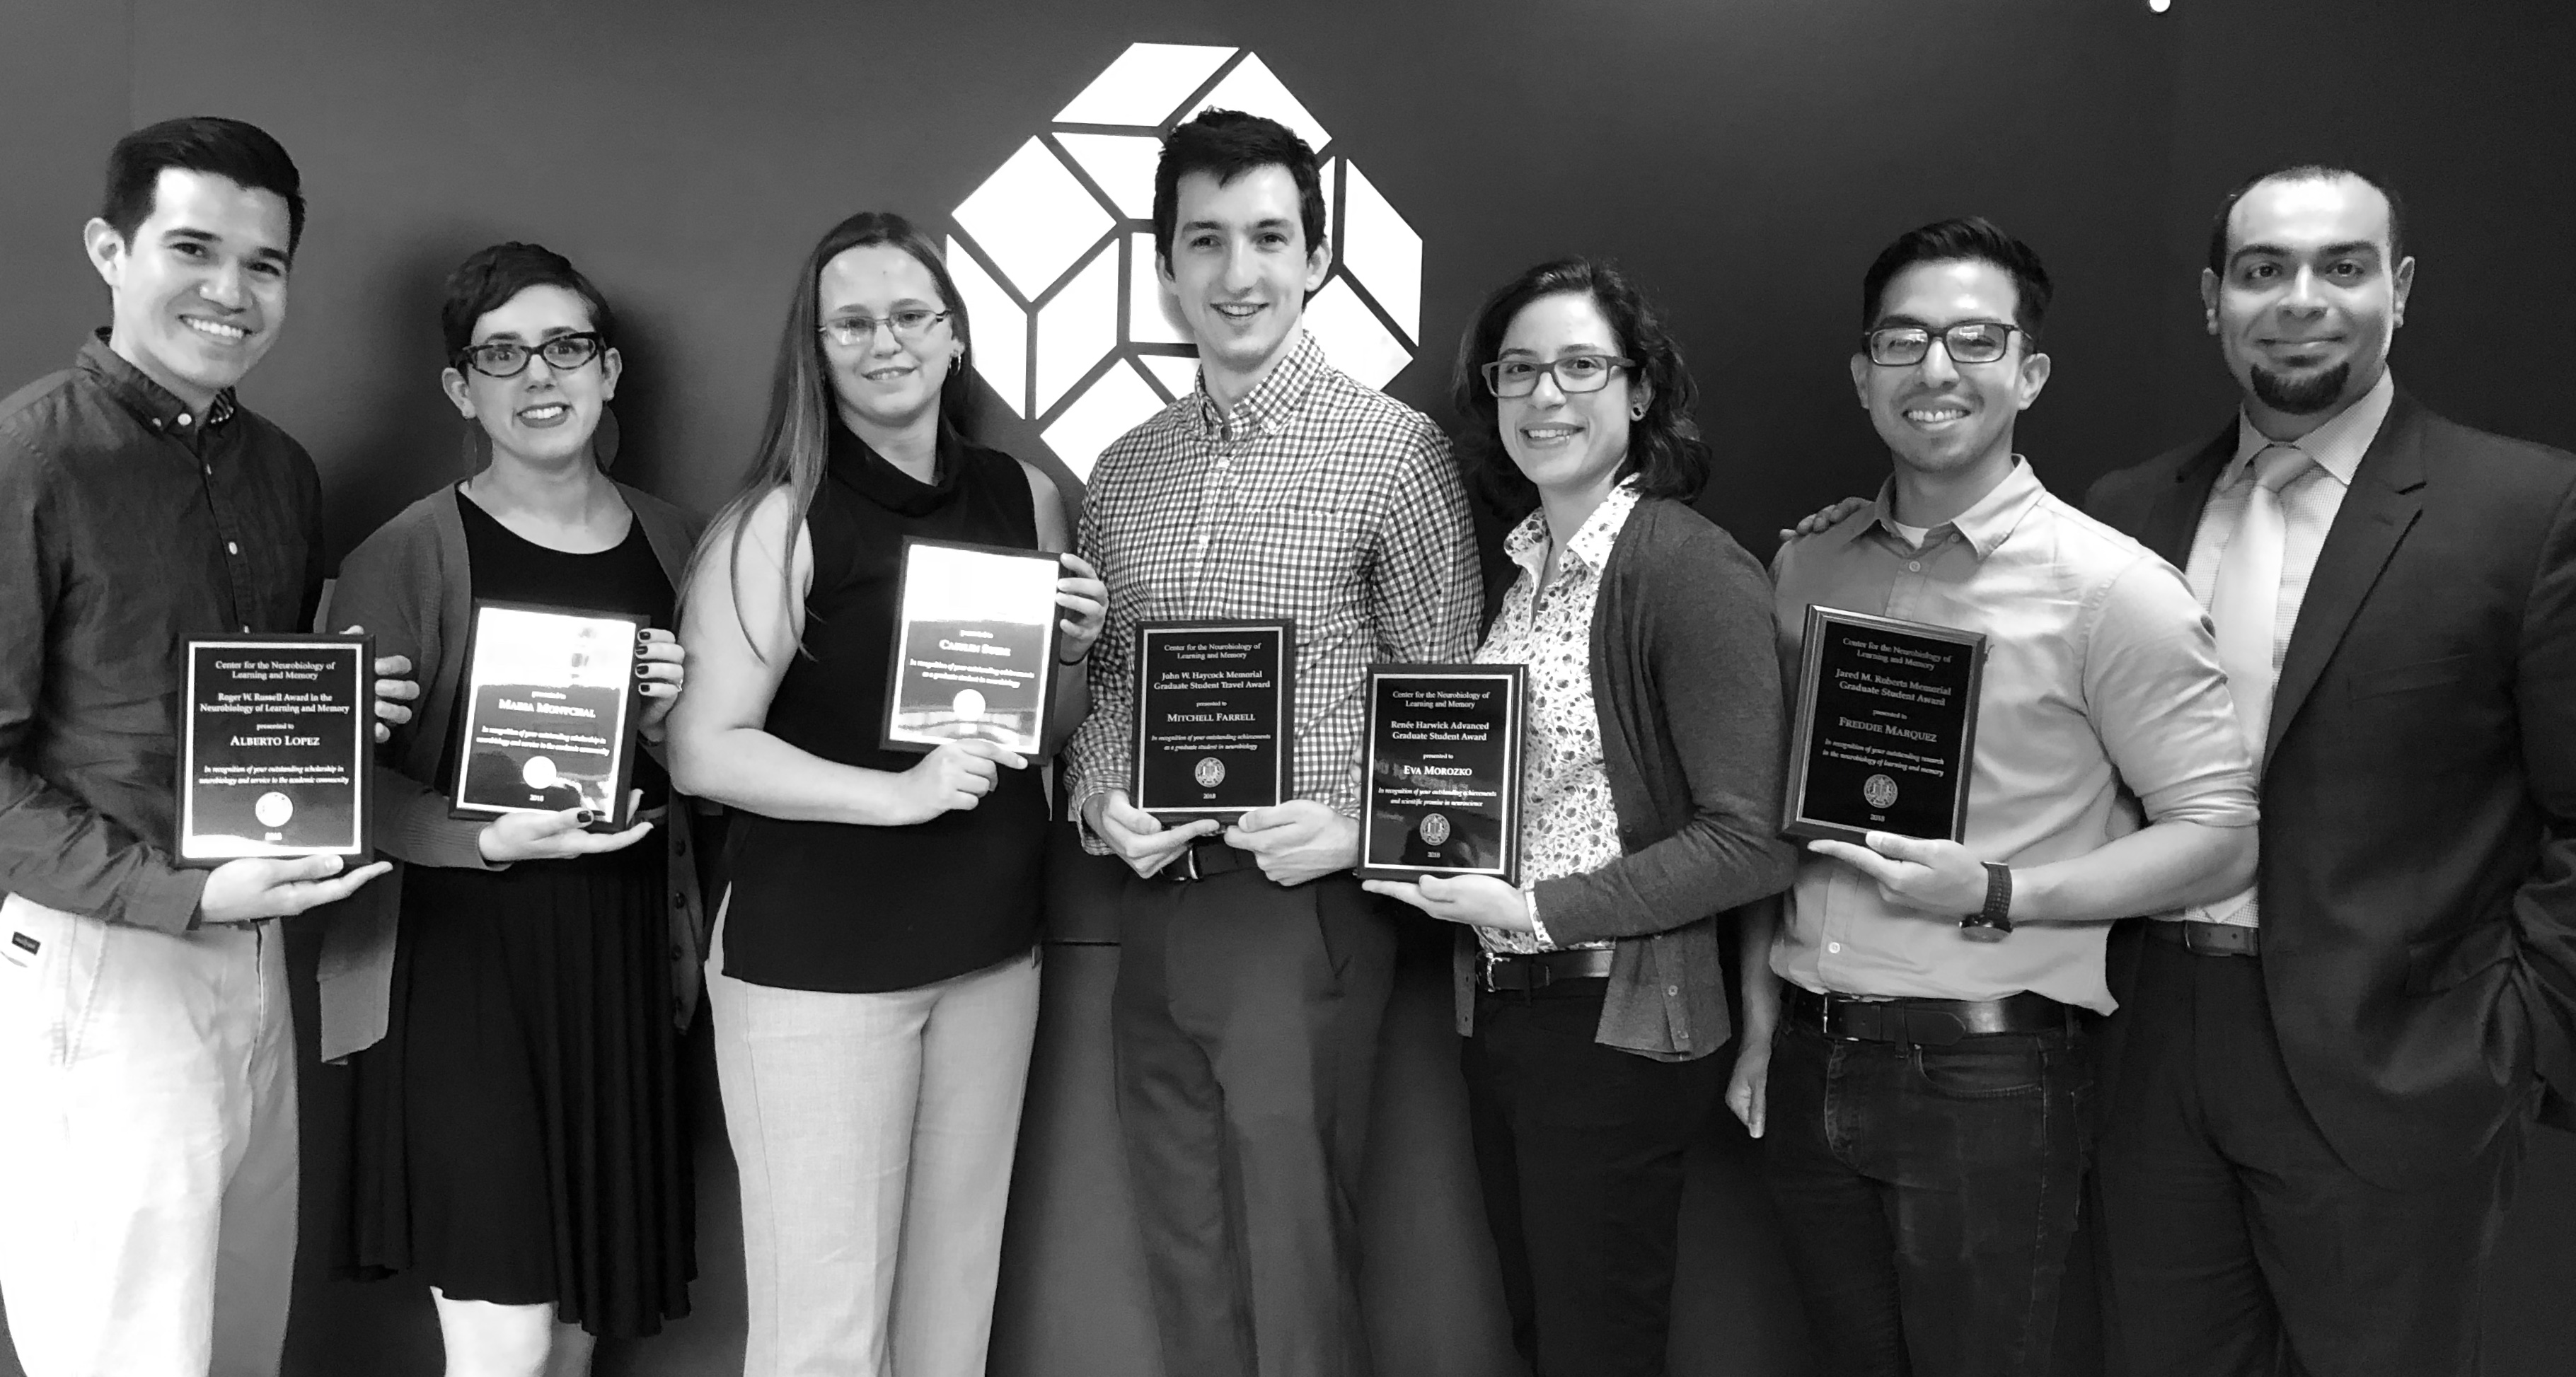 Graduate Student Award Recipients Alberto Lopez, Maria Montchal, Caitlin Suire, Mitchell Farrell, Eva Morozko and Freddie Marquez pose with CNLM Director Dr. Michael Yassa